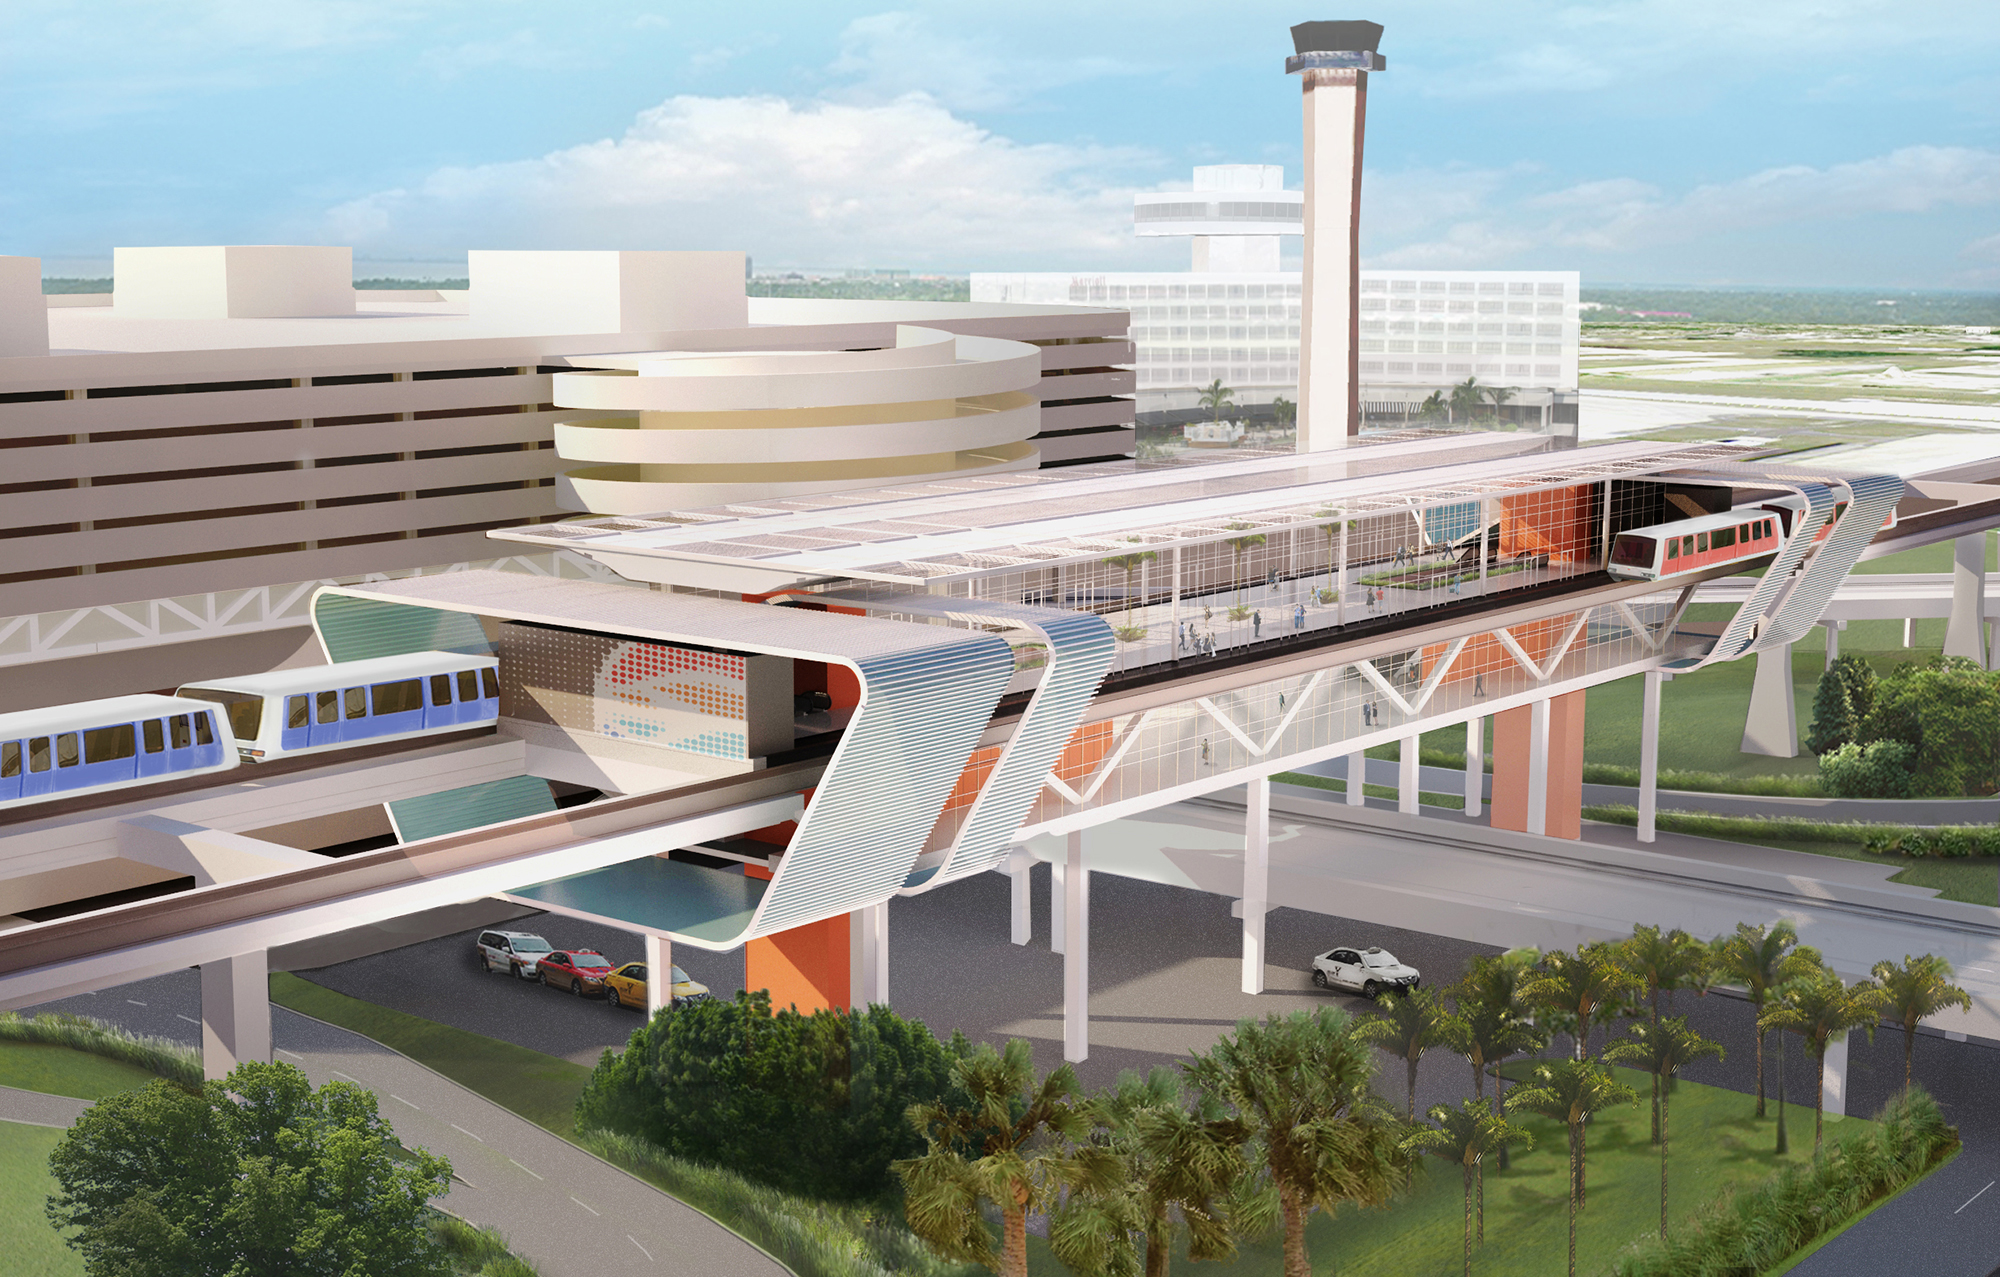 Is Tampa Airport Expansion Betting Big On Old Tech Over